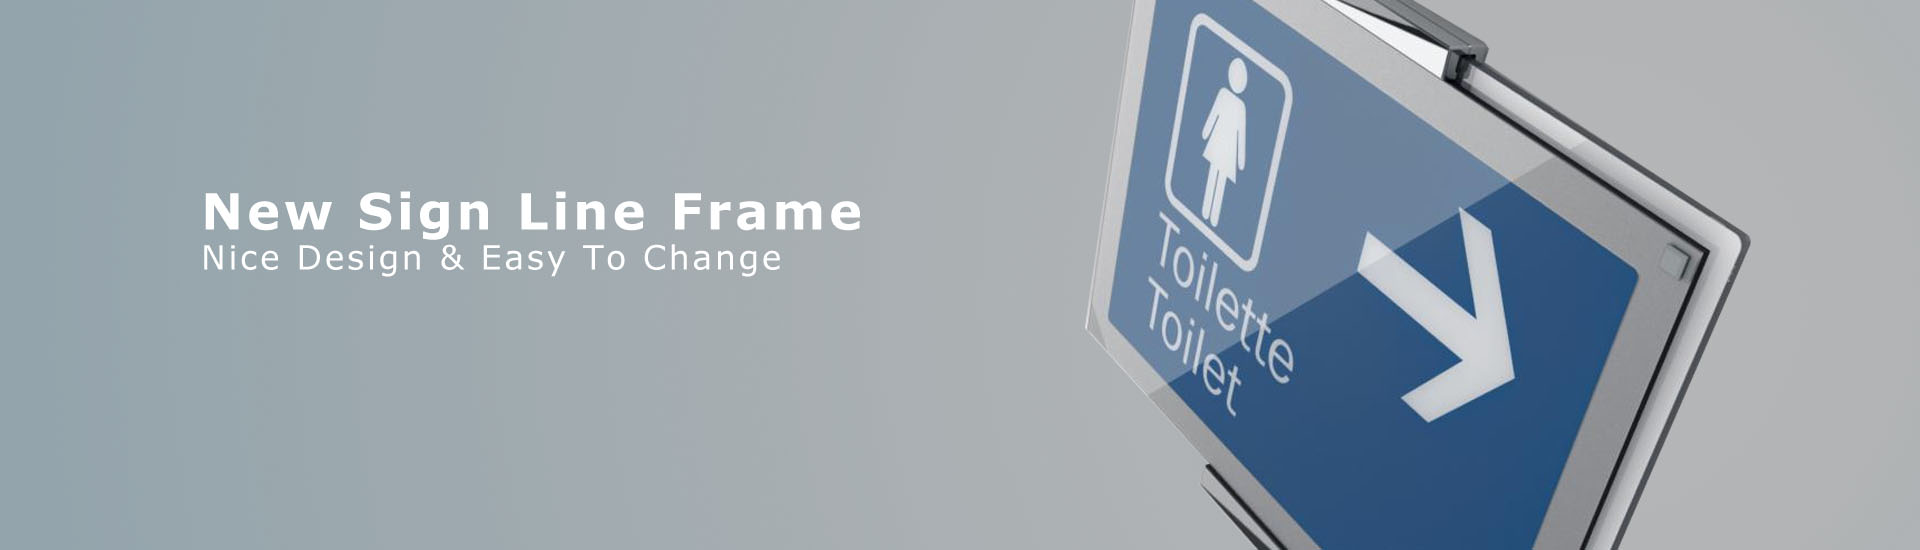 Sign-line-frame-ondemant